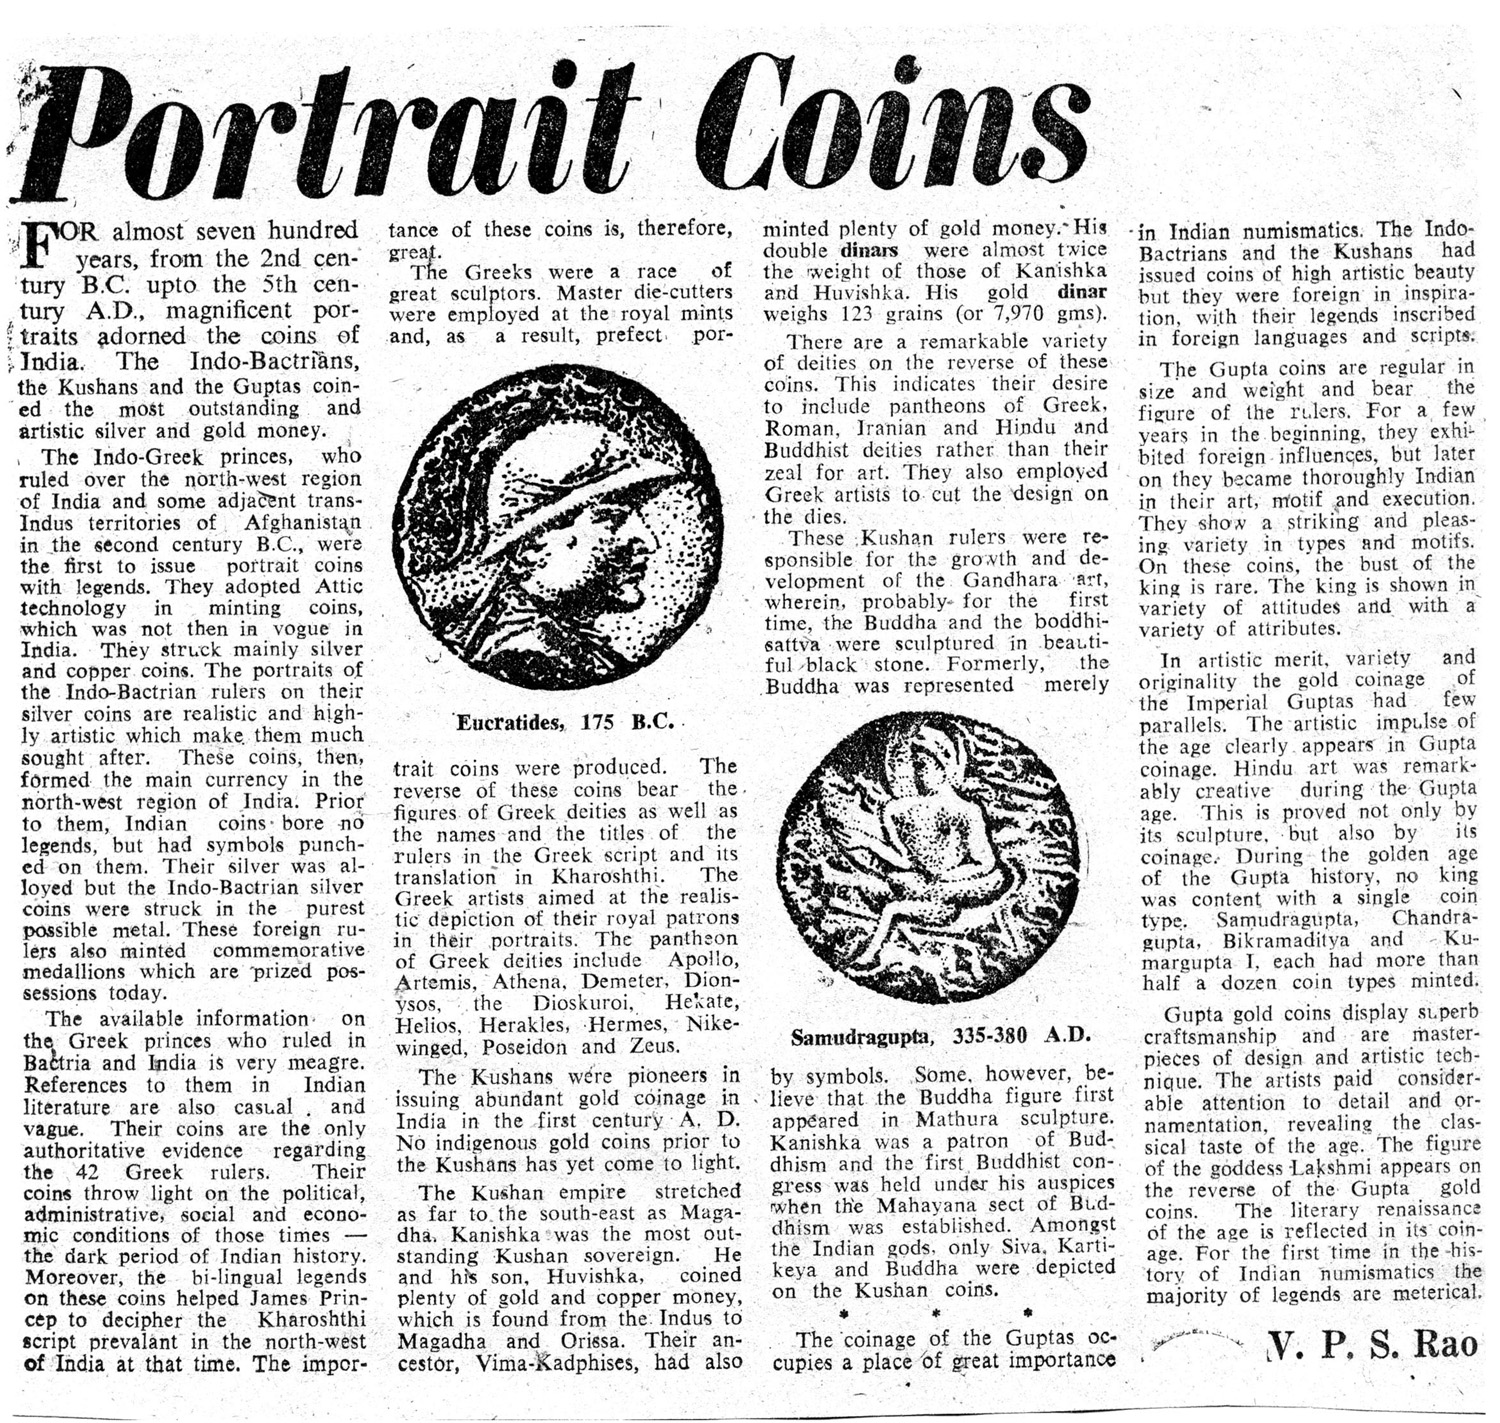 52. Sri VPS Rao on Portrait Coins1.